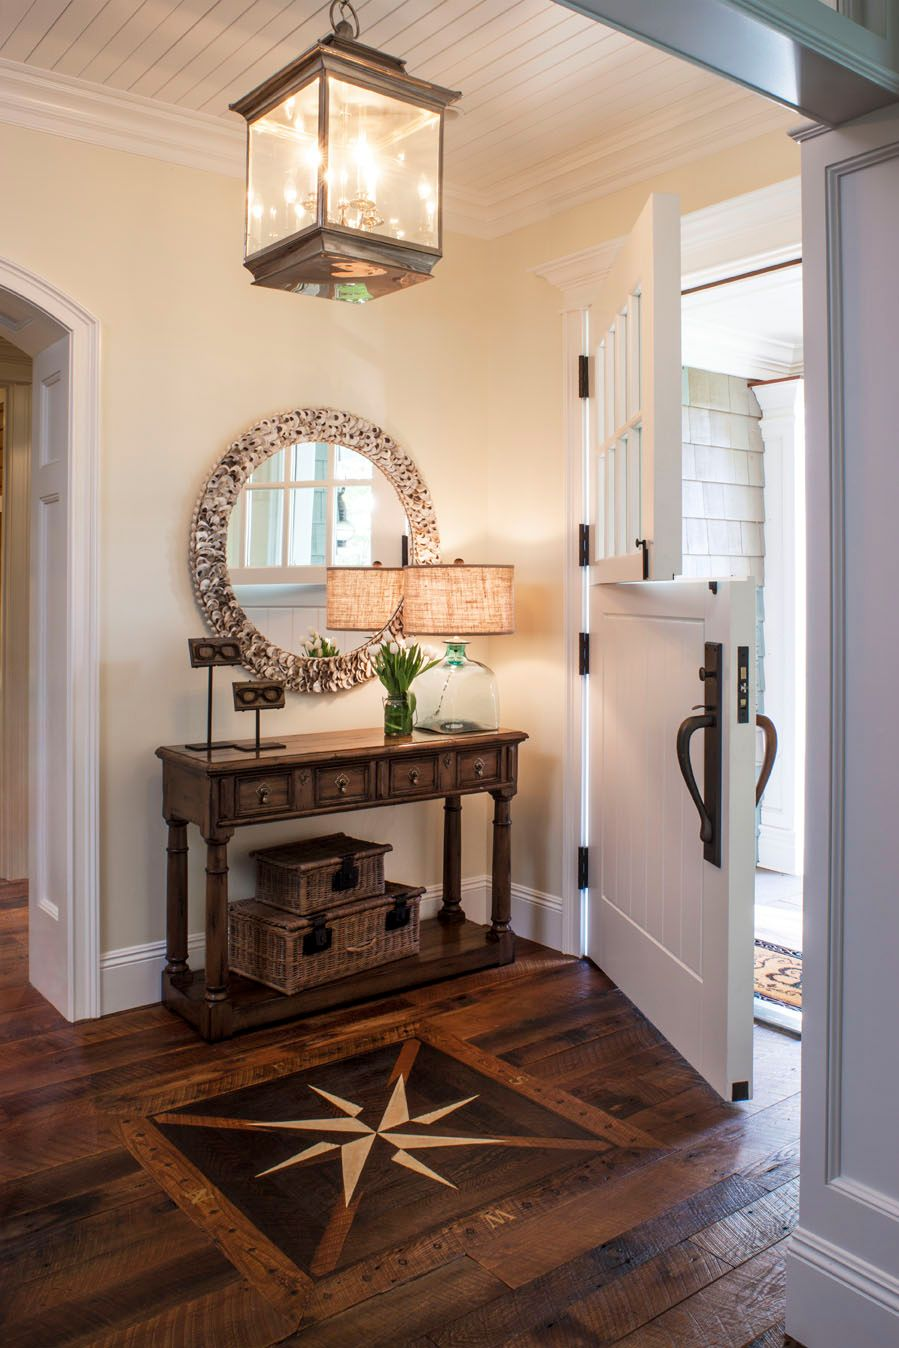 Oversized Entry Light Welcomes with Warmth More